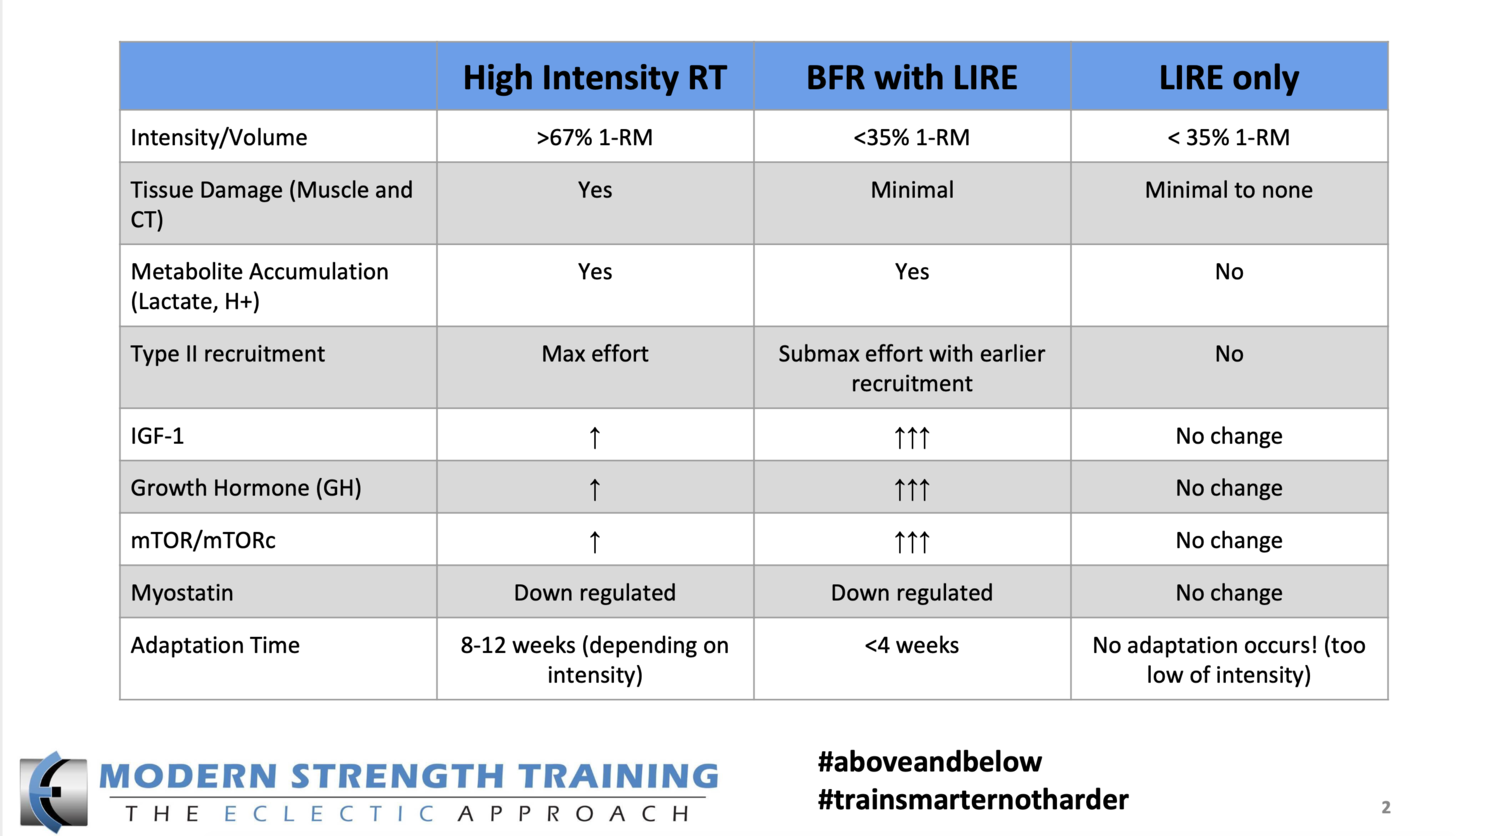 This table is shared  Dr. Kyle Coffey  and outlines the mechanical and metabolic changes seen with high intensity resistance training, BFR with low intensity resistance training, and low intensity resistance training alone.